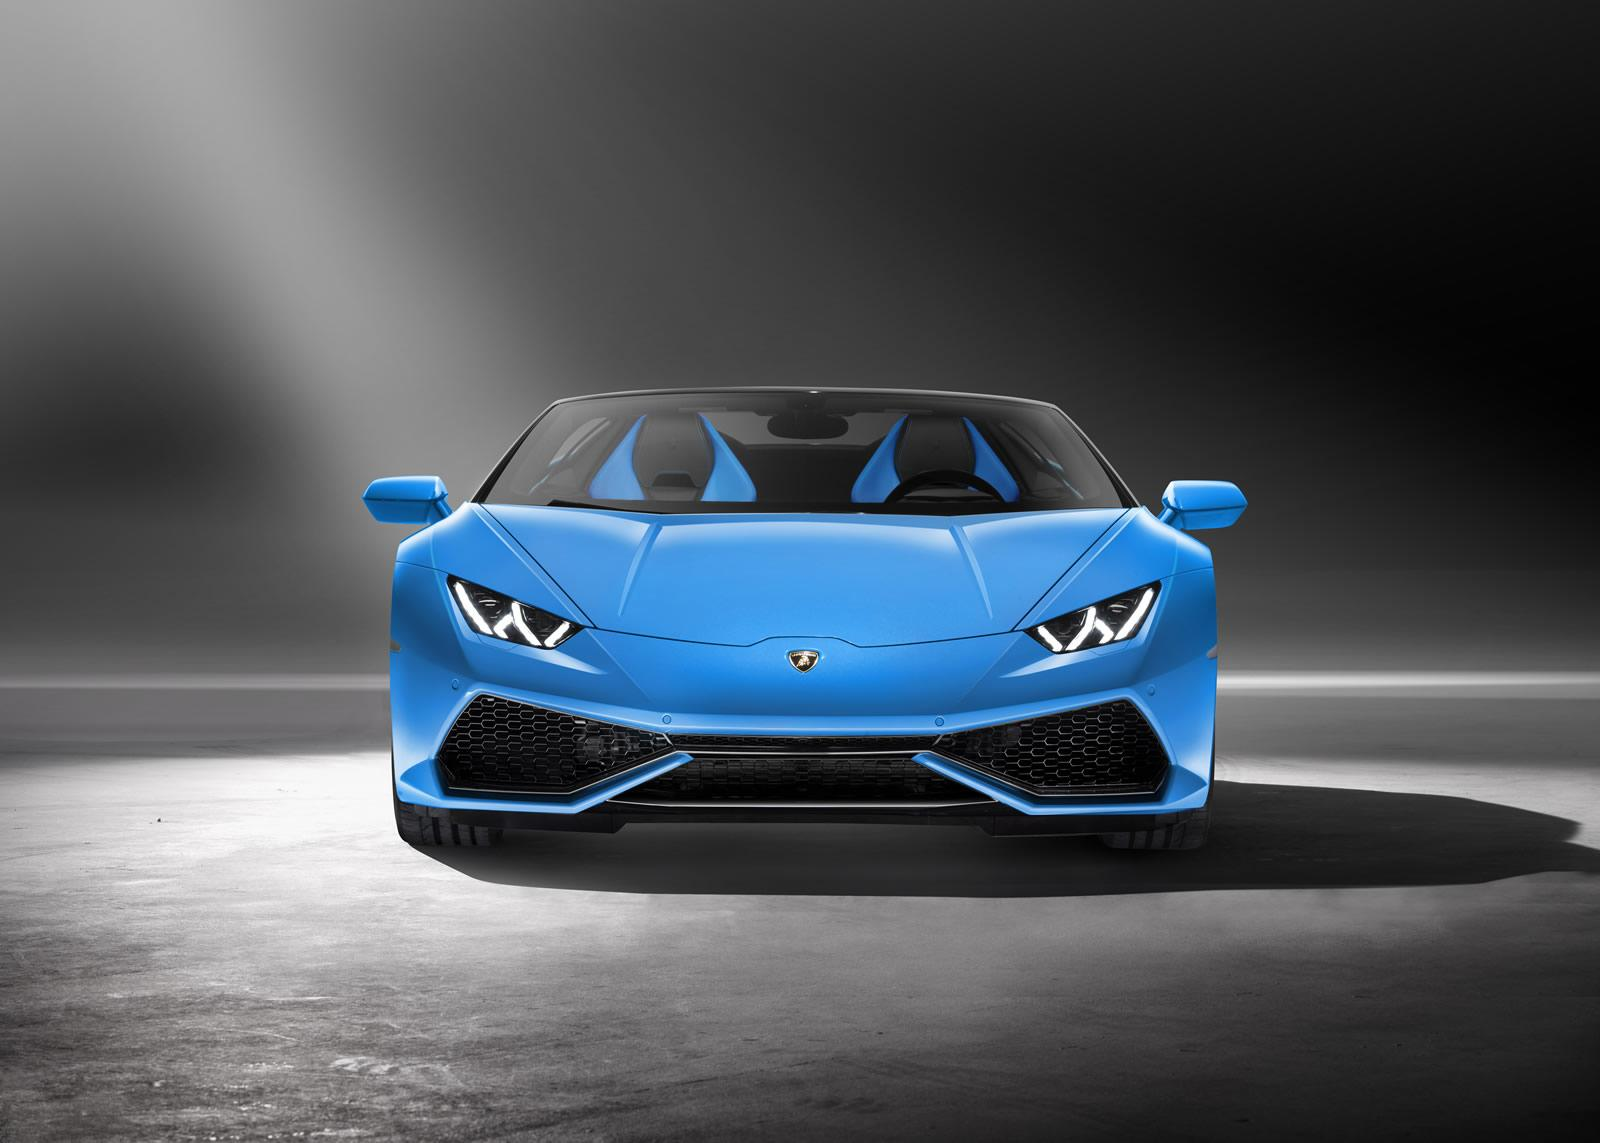 official lamborghini spyder huracan 2016 new photos and details garage car. Black Bedroom Furniture Sets. Home Design Ideas